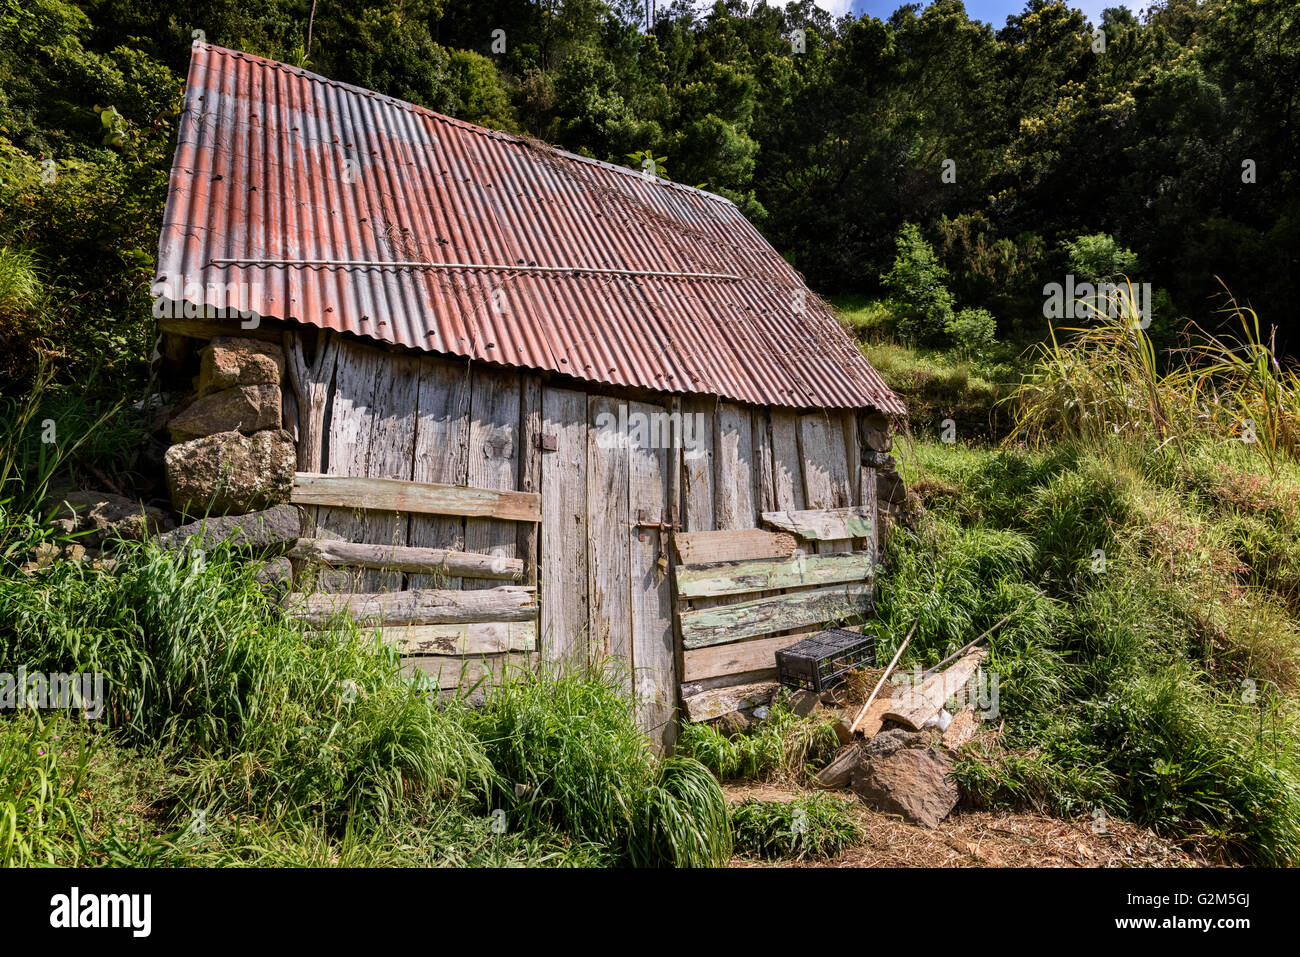 Dilapidated Shed - Stock Image